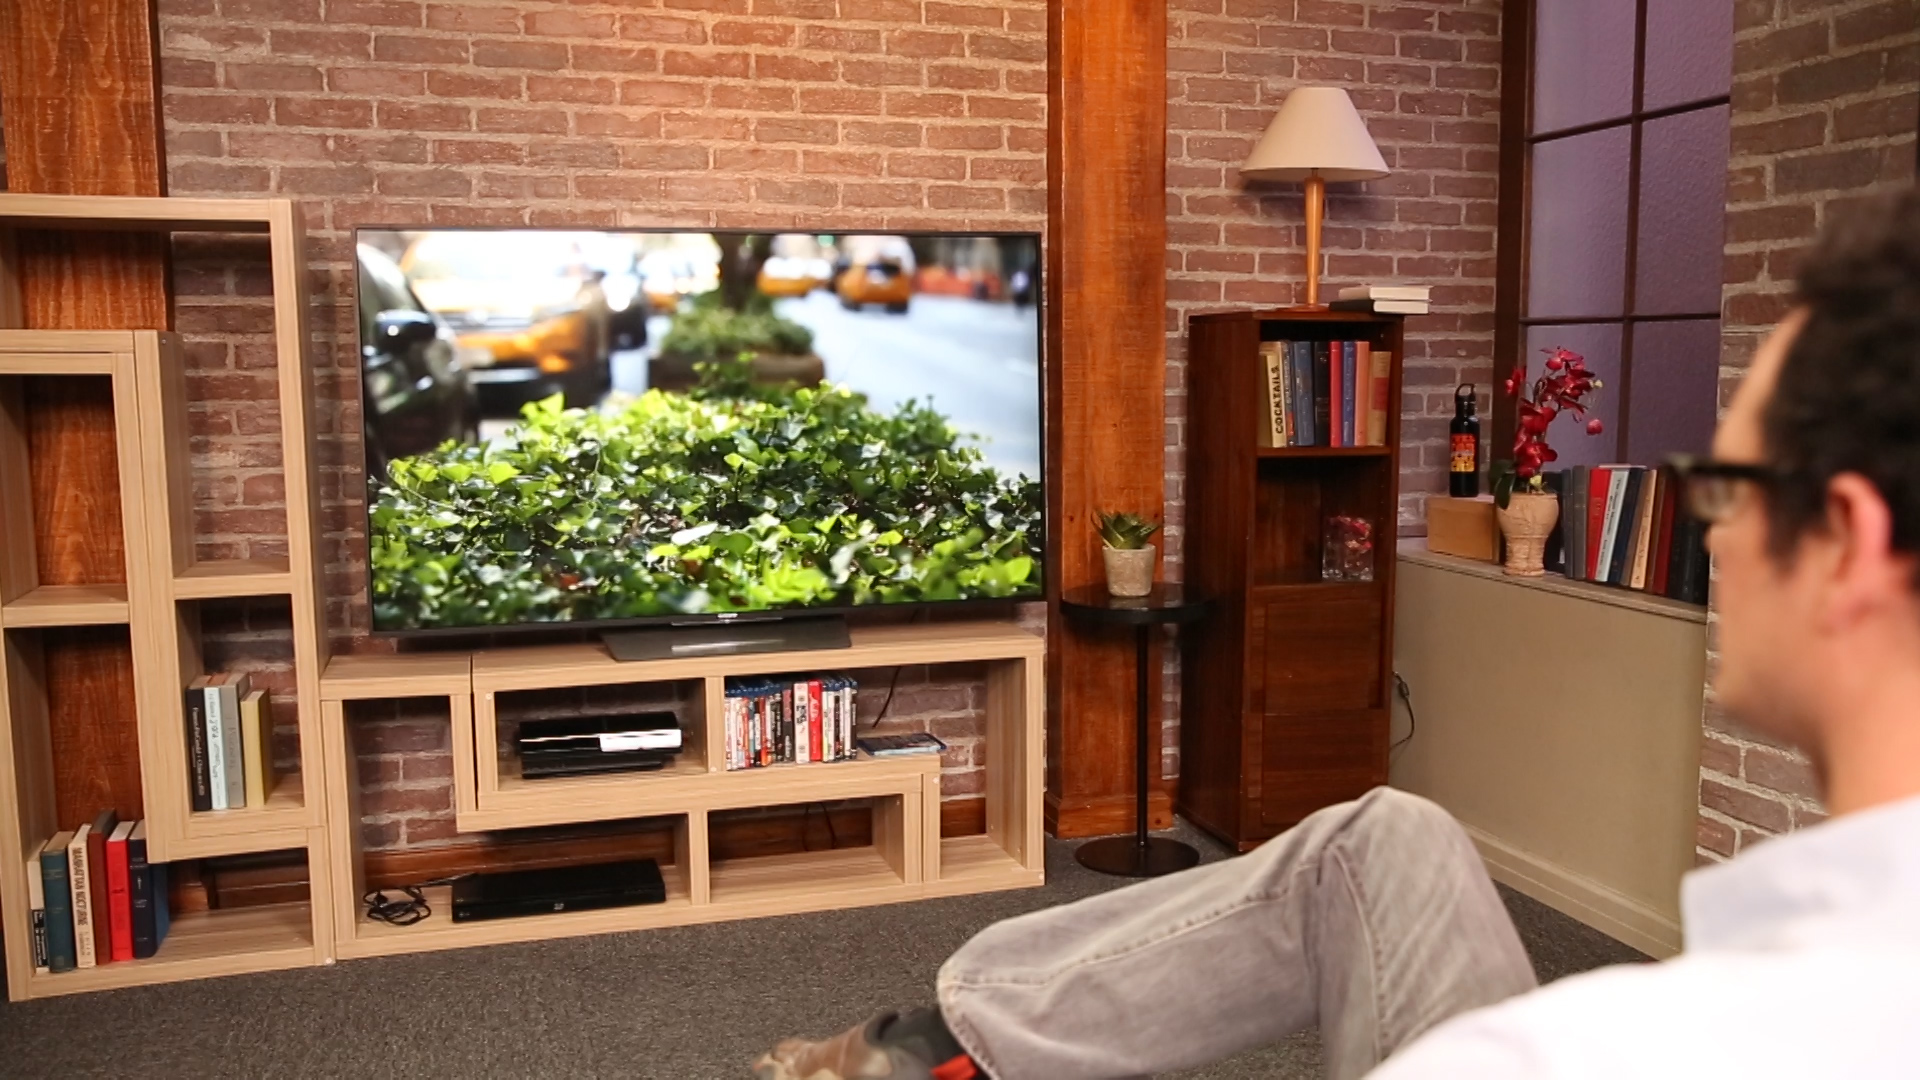 Video: Sleek Sony TV sports Android smarts, lags behind in picture quality